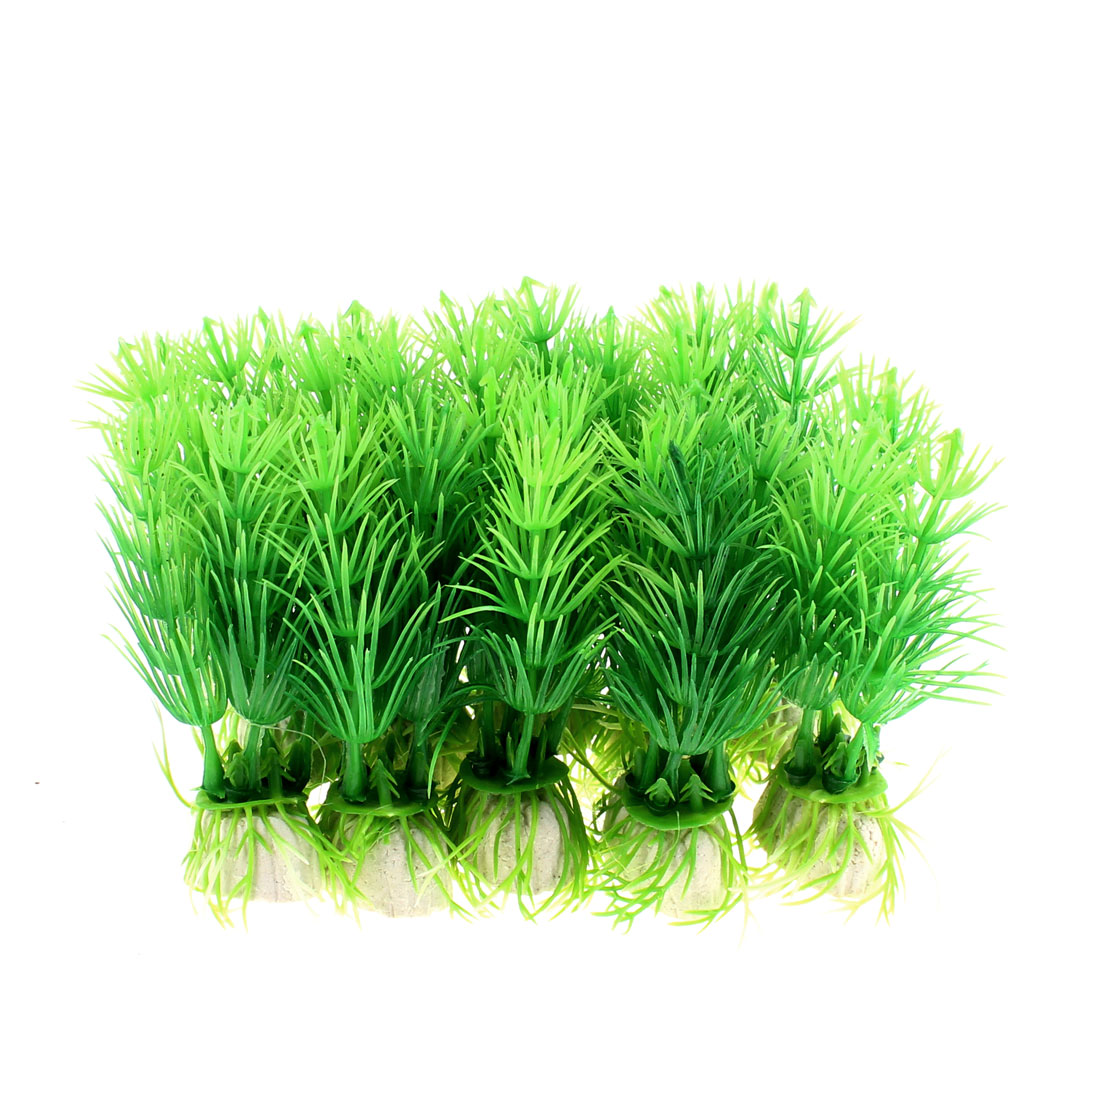 Aquarium Fish Tank Artificial Plastic Plant Water Grass Ornament 10 Pcs Green